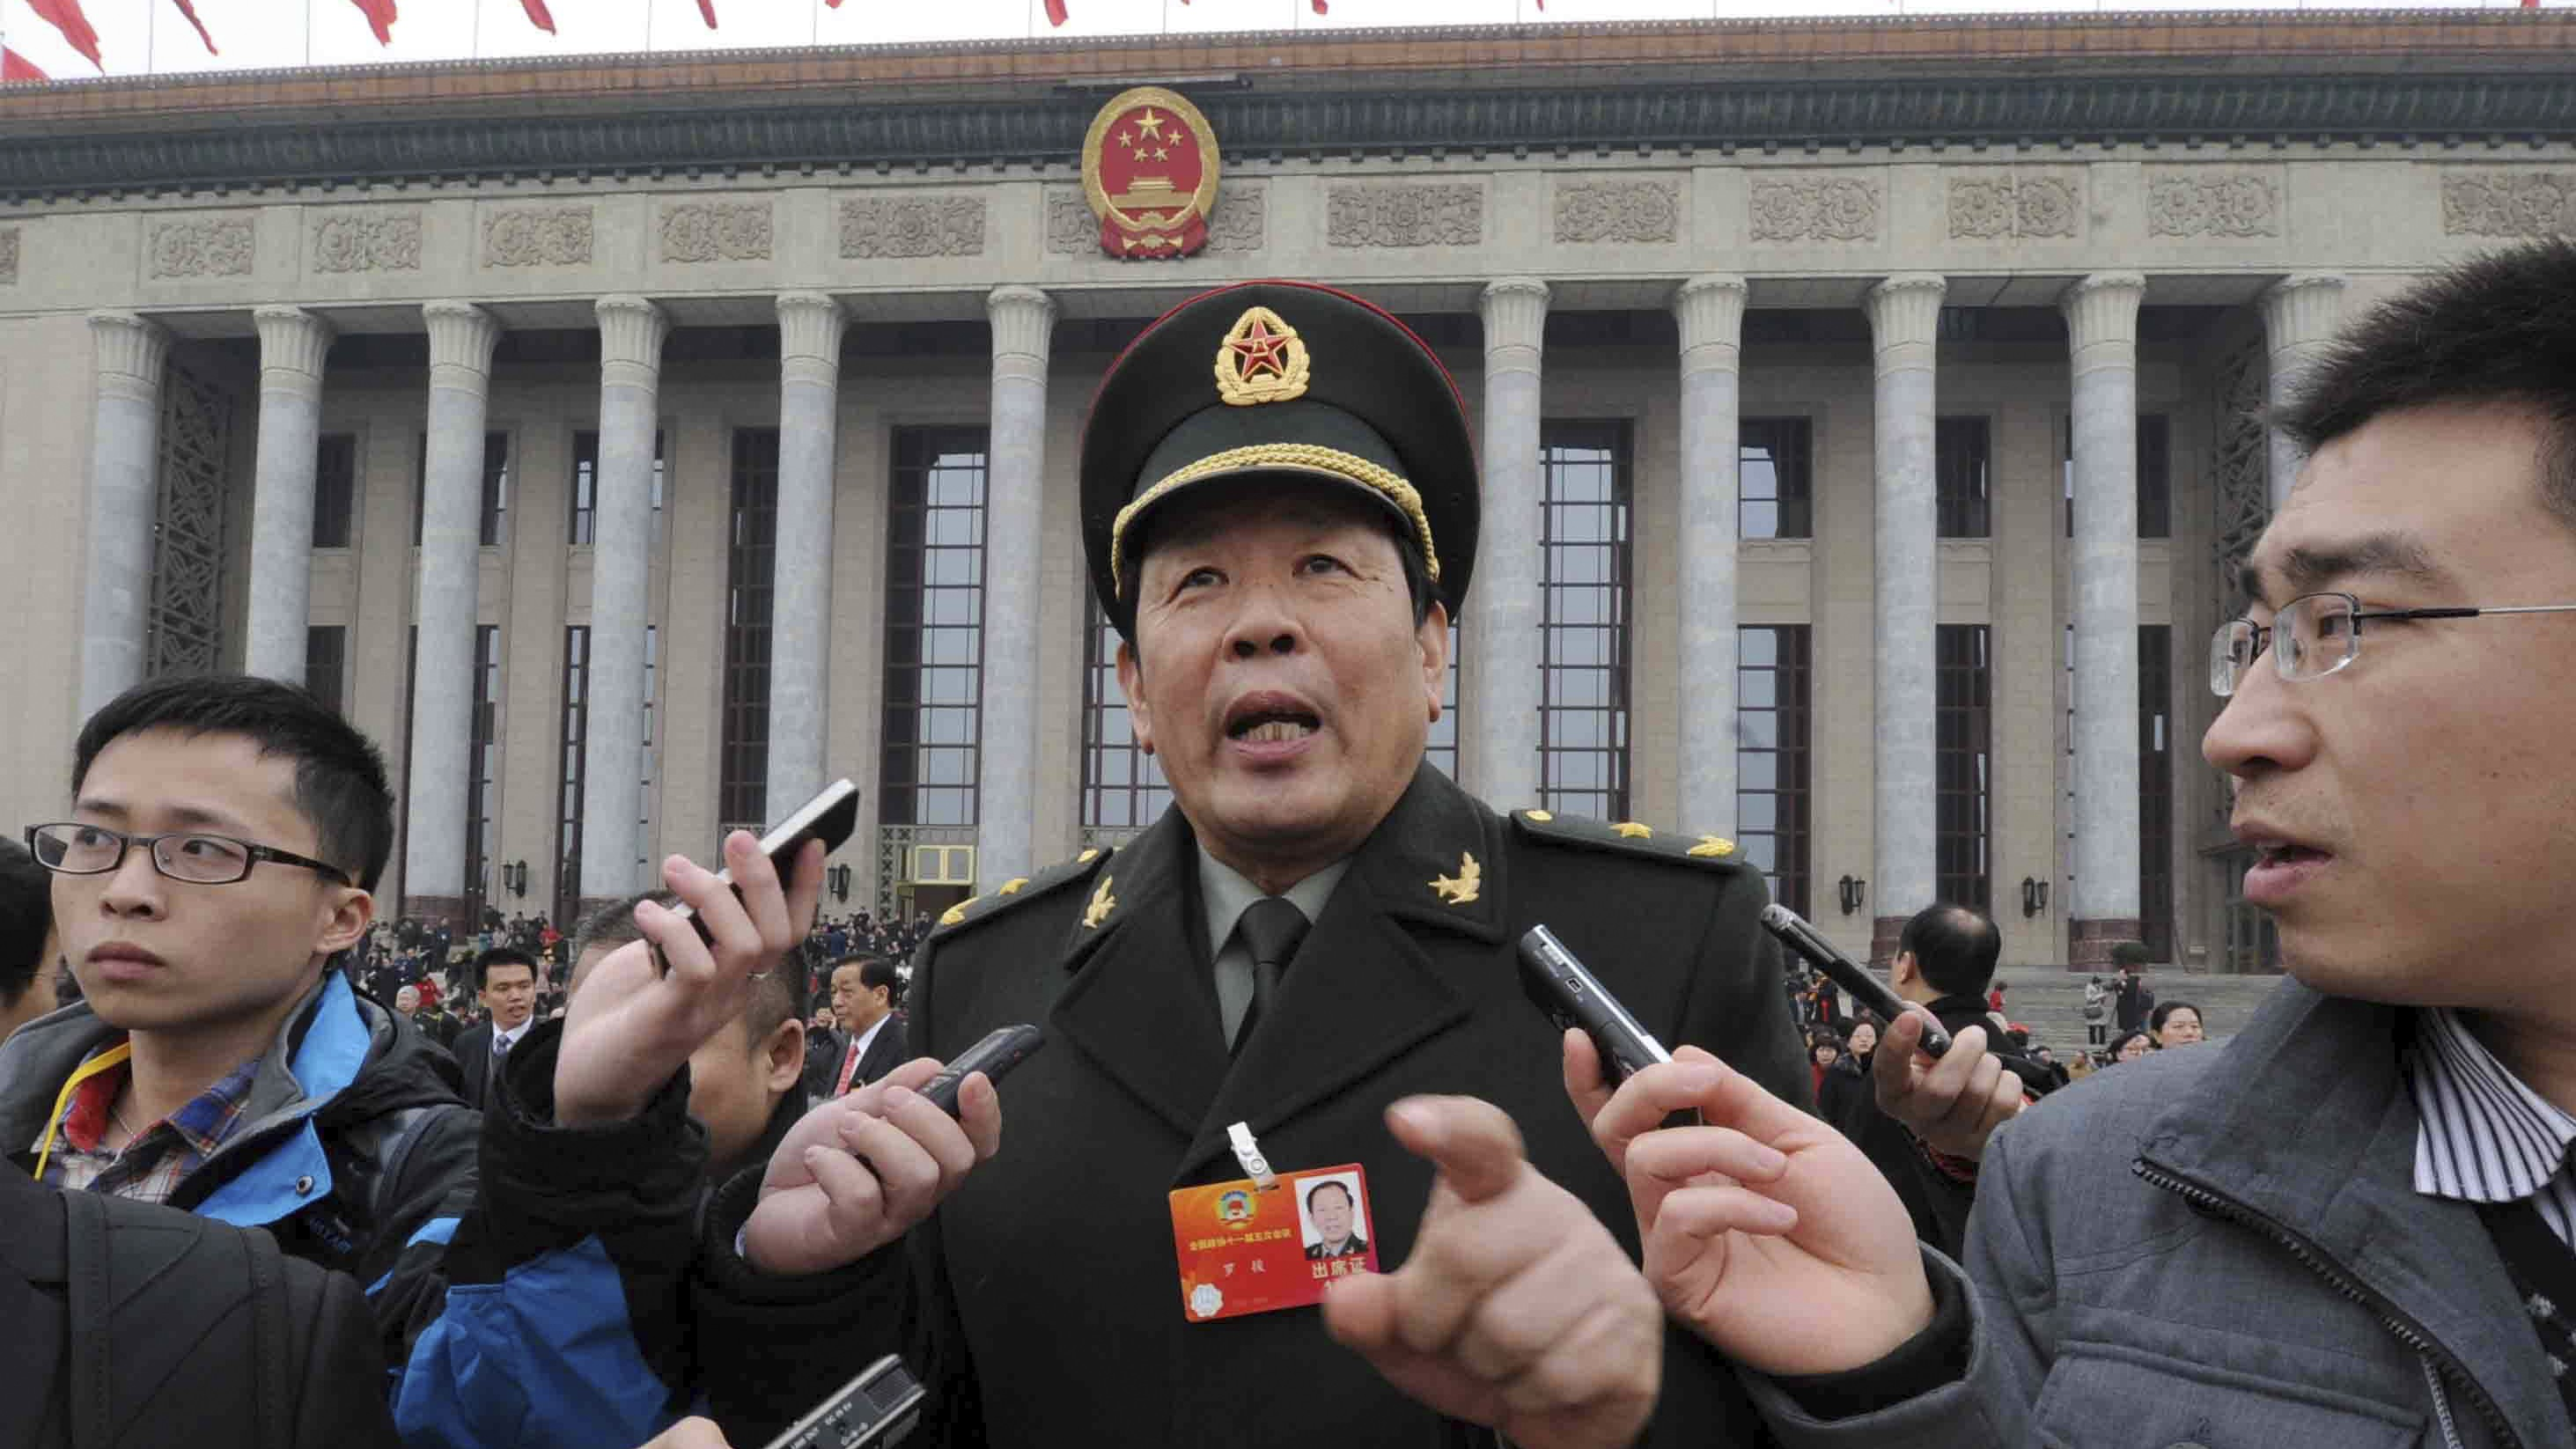 People's Liberation Army Major General Luo Yuan speaks to journalists in front of the Great Hall of the People during a session of the Chinese People's Political Consultative Conference (CPPCC) in Beijing March 3, 2012. REUTERS/Stringer (CHINA - Tags: POLITICS MILITARY) CHINA OUT. NO COMMERCIAL OR EDITORIAL SALES IN CHINA - RTR3BXT6